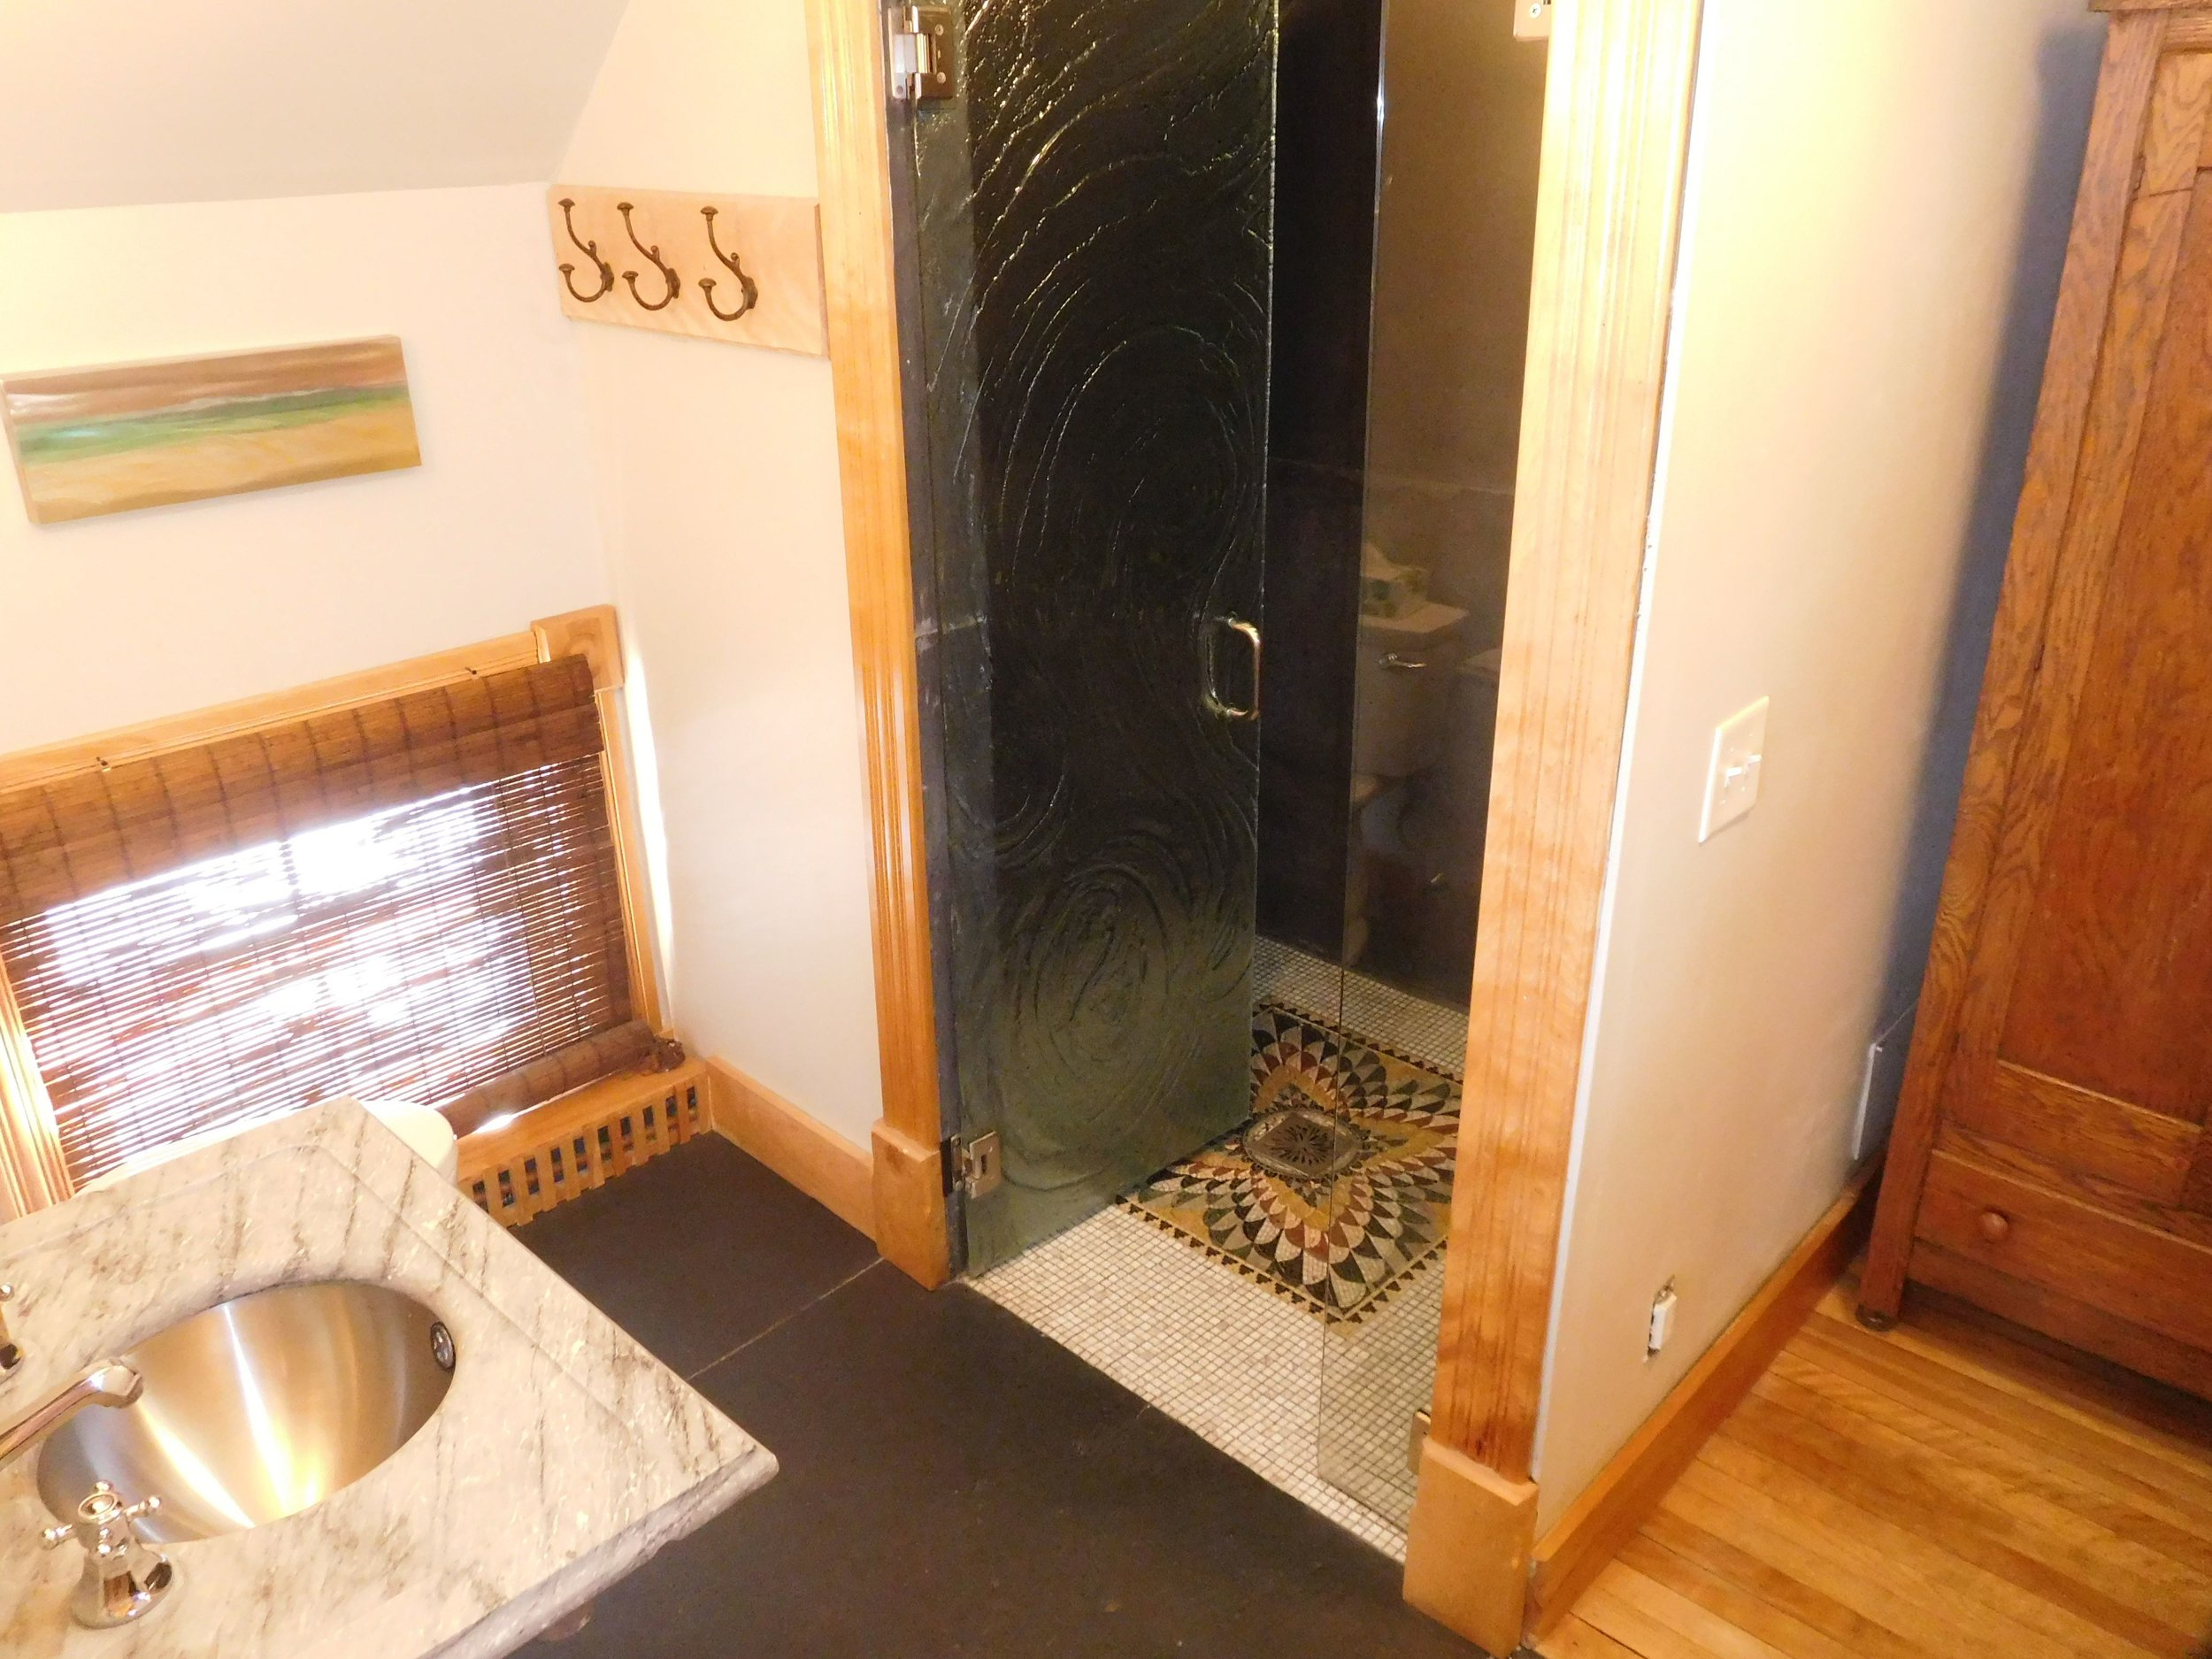 Carriage House downstairs bathroom. Steam shower, mosaic tiled floor, pressed glass door